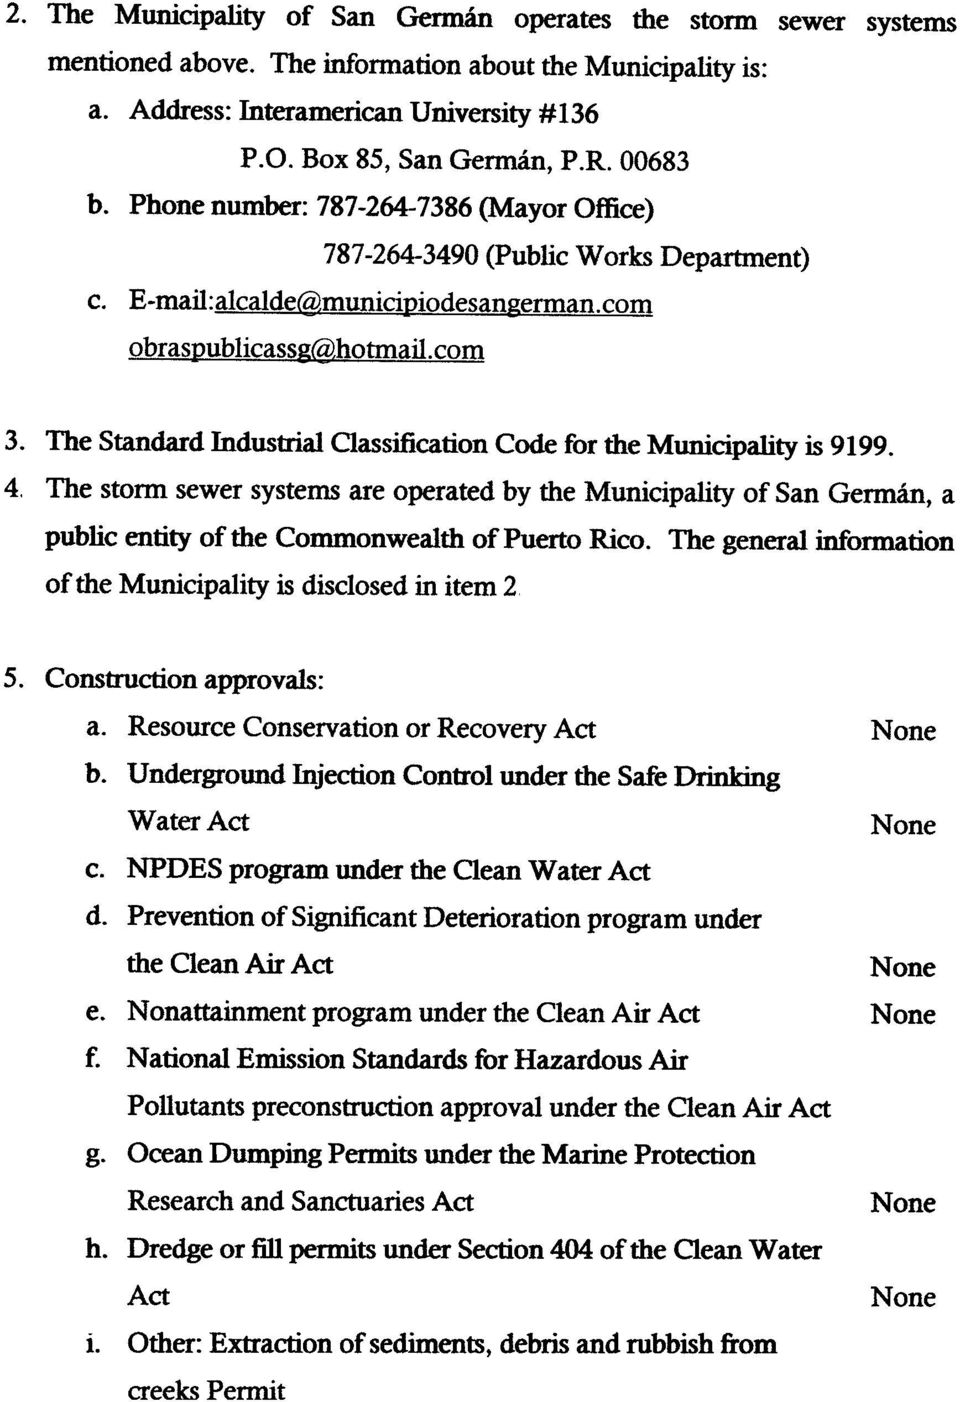 The Standard Industrial Classification Code for die Municipality is 9199. The stonn sewer systems are operated by the Municipality of San Gennan, a public entity of the Commonwealth of Puerto Rico.